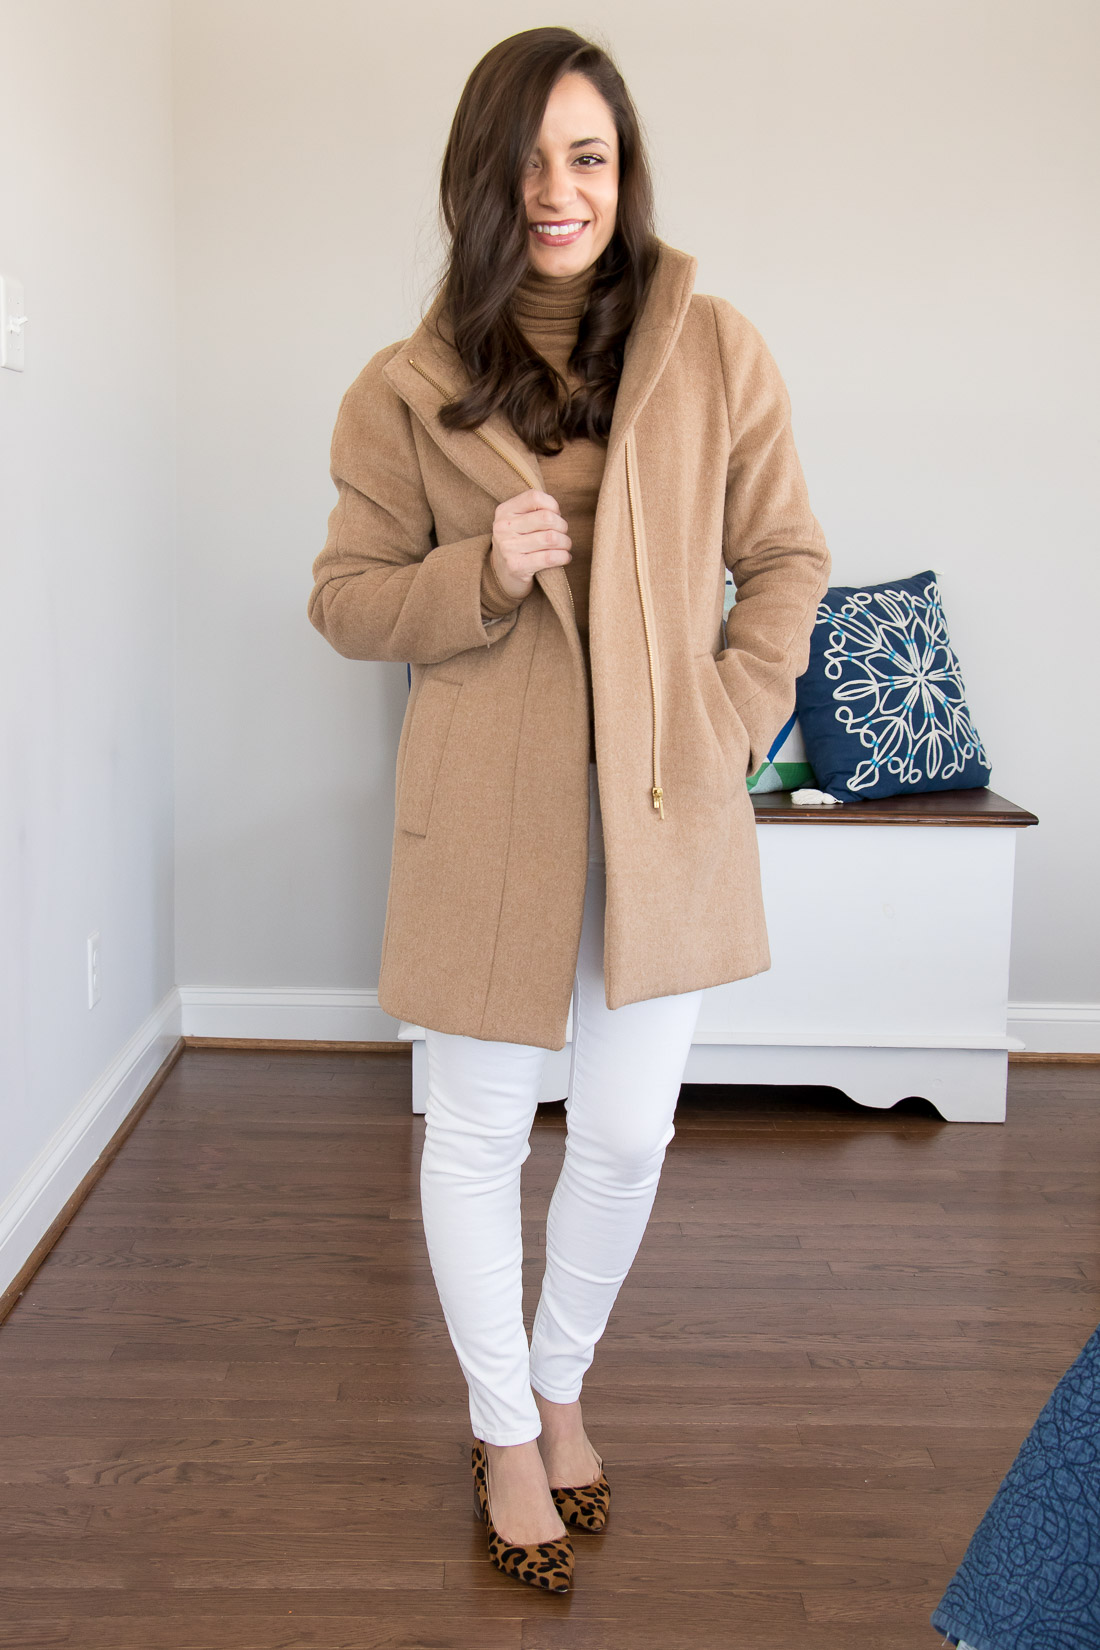 Camel coat outfit with winter white. White denim outfit for winter.